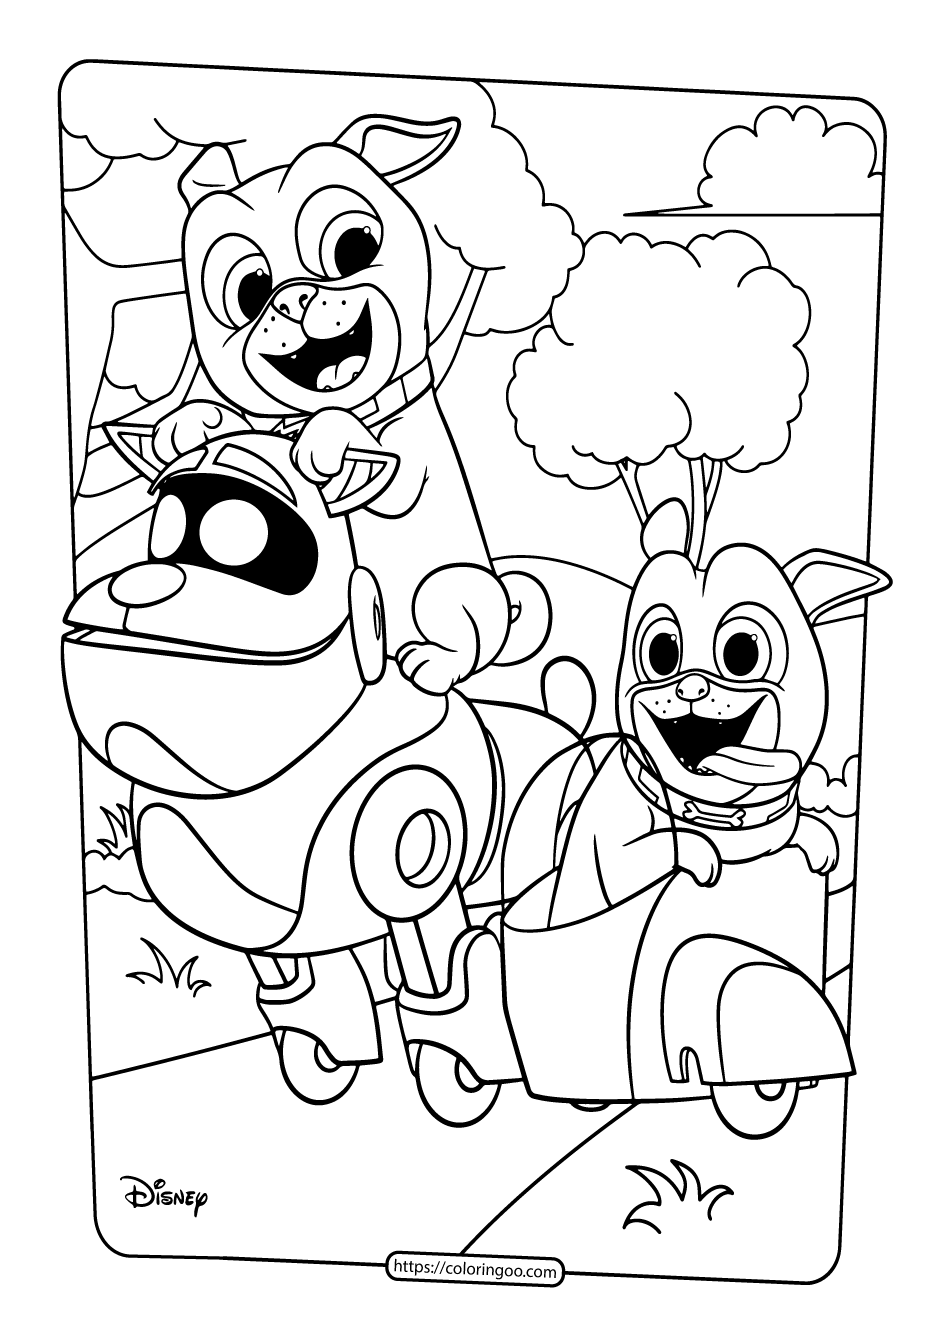 Printable Puppy Dog Pals Coloring Book Pages 02 3 Puppy Coloring Pages Dog Coloring Page Disney Coloring Pages